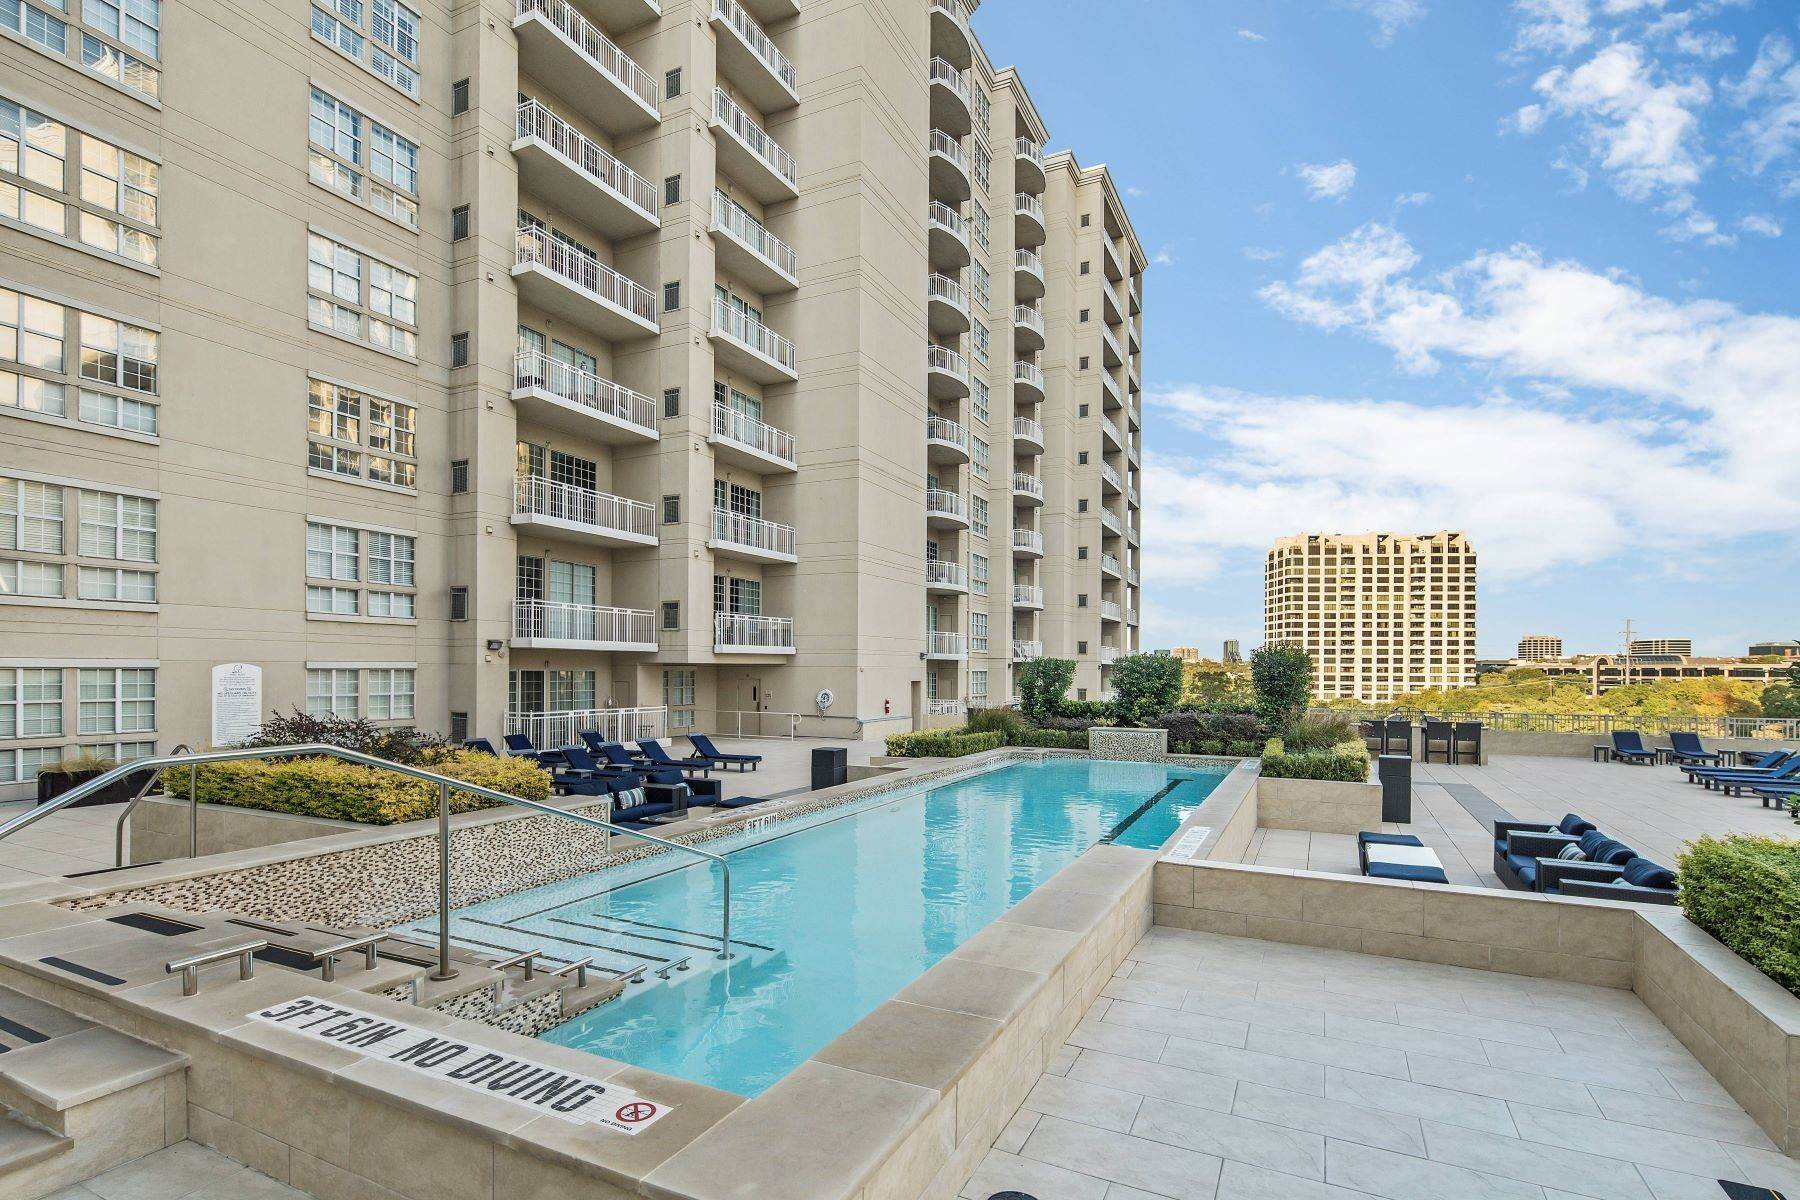 17. Condominiums for Sale at 3225 Turtle Creek Boulevard, Dallas, TX, 75219 3225 Turtle Creek Boulevard, Unit# 207 Dallas, Texas 75219 United States